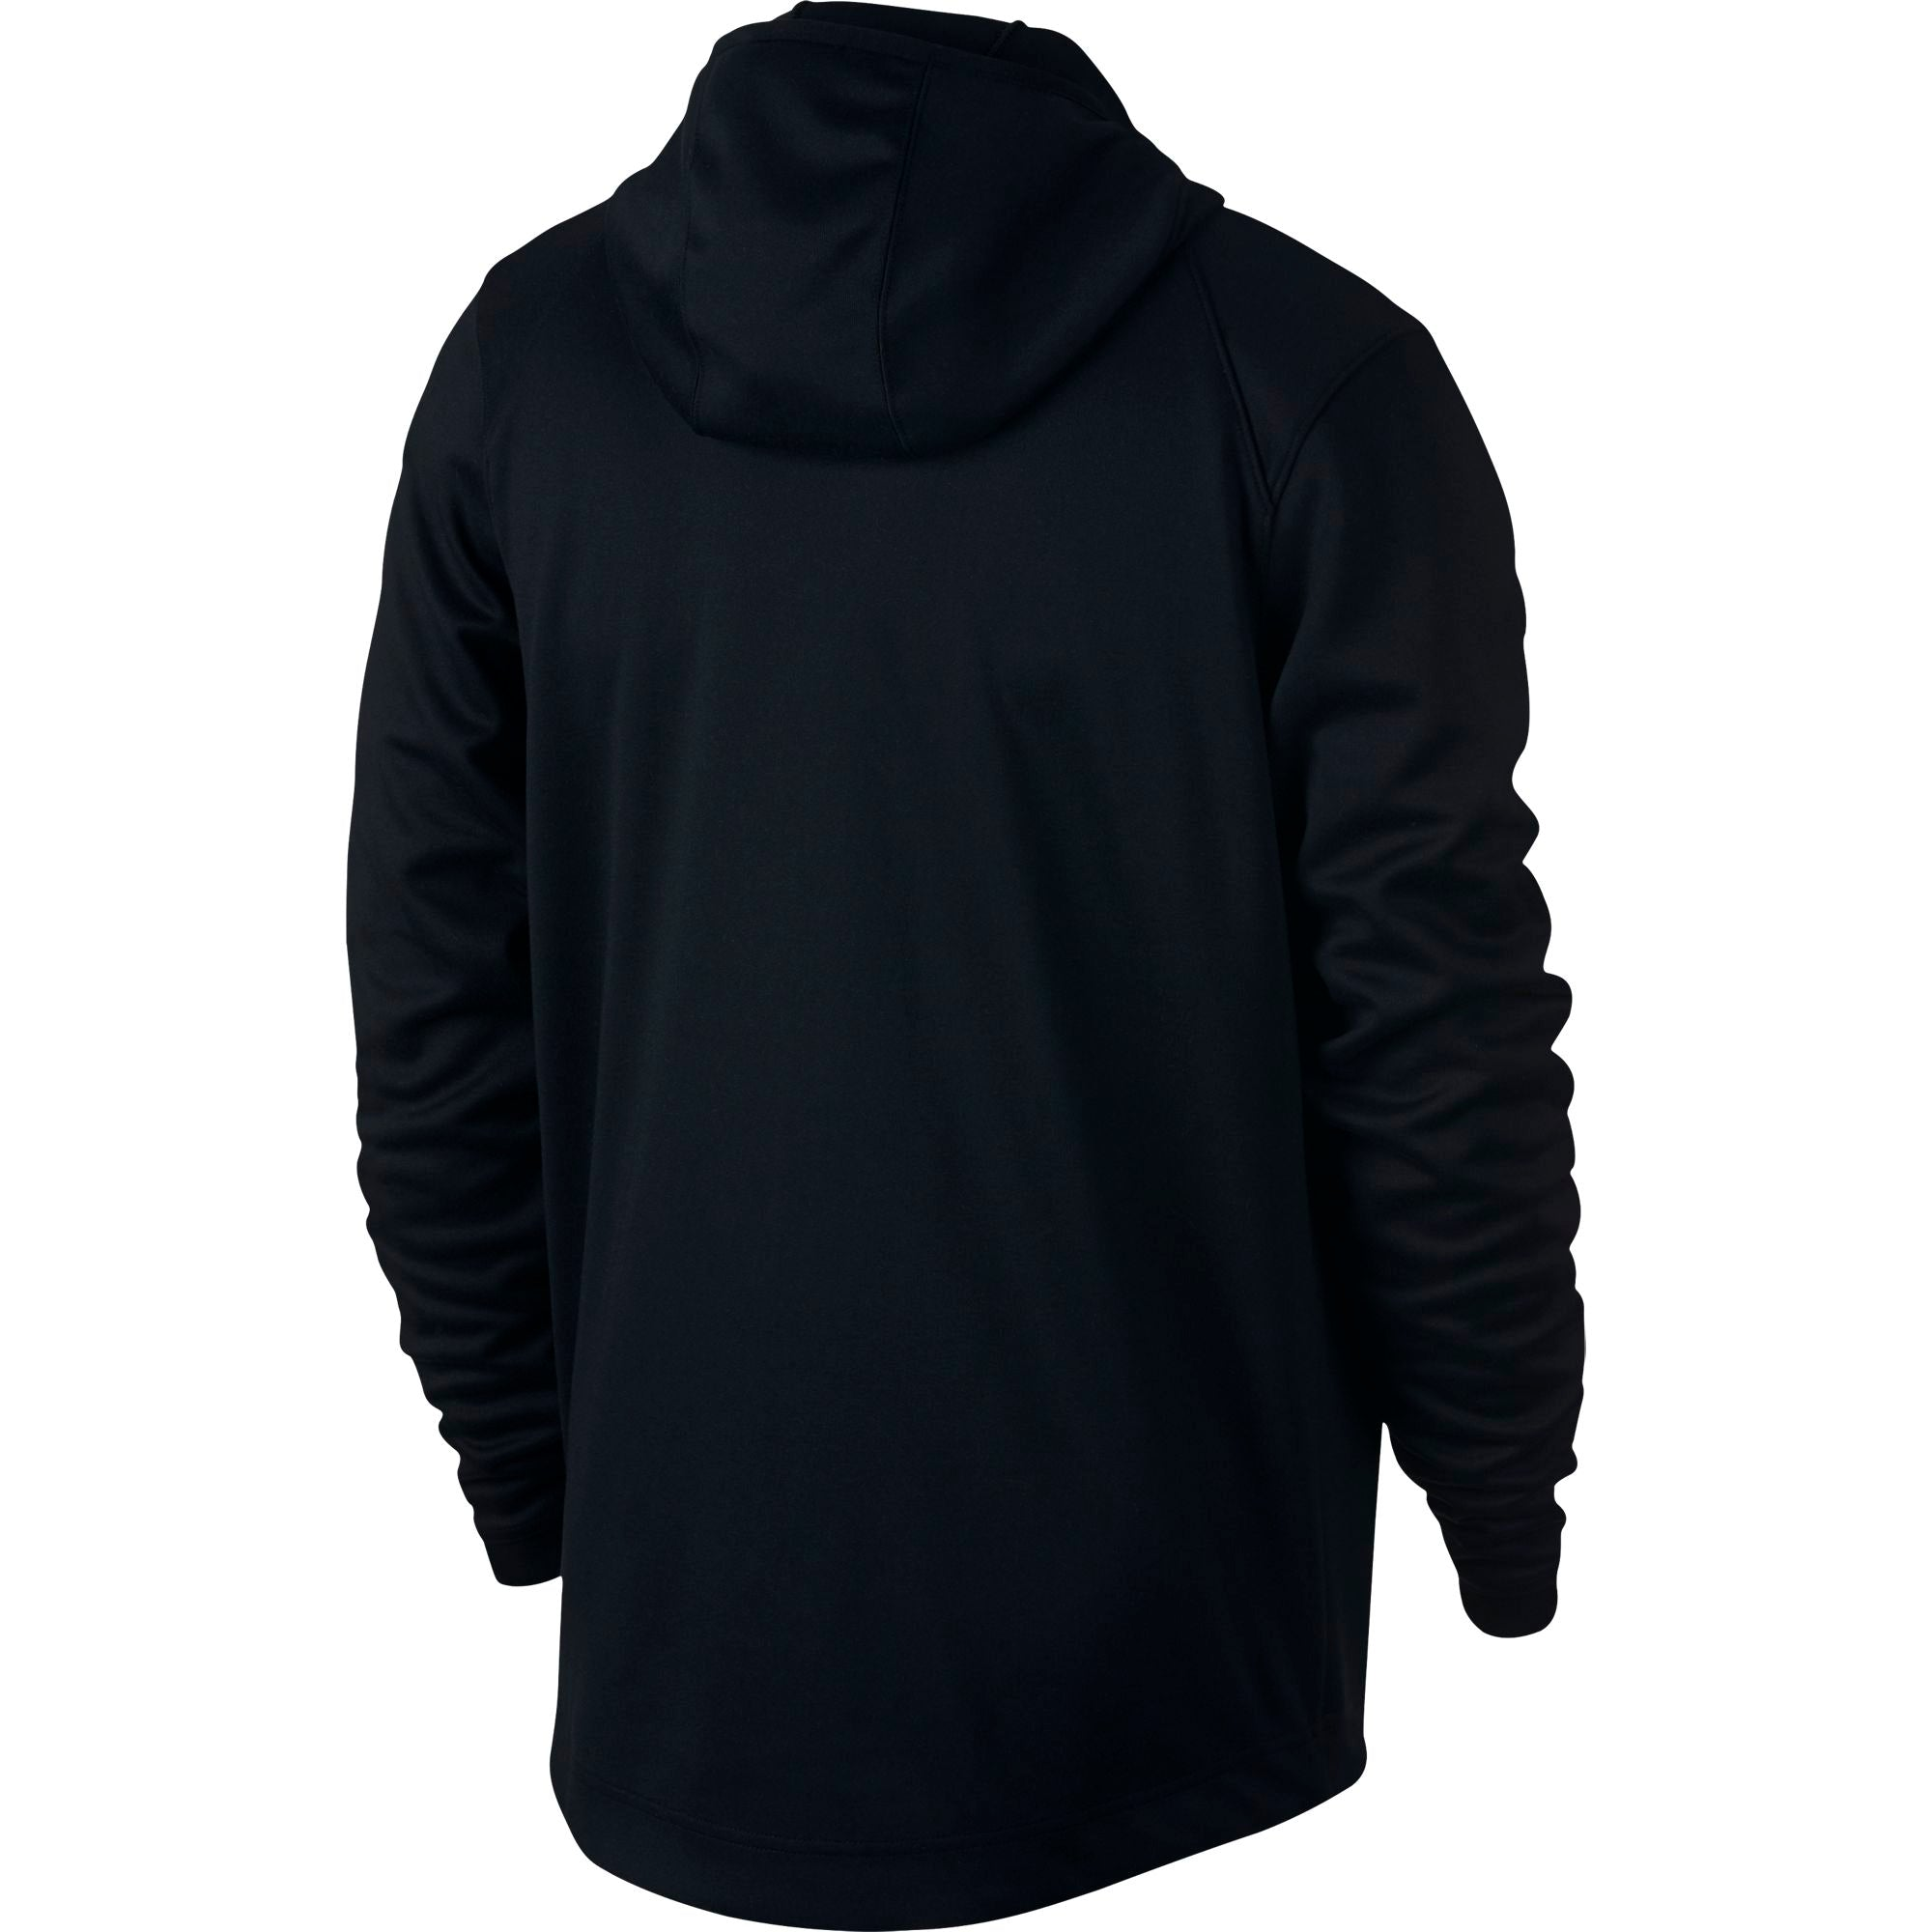 Nike Basketball Spotlight Full Zip Double-Knit Hoodie - Black/White